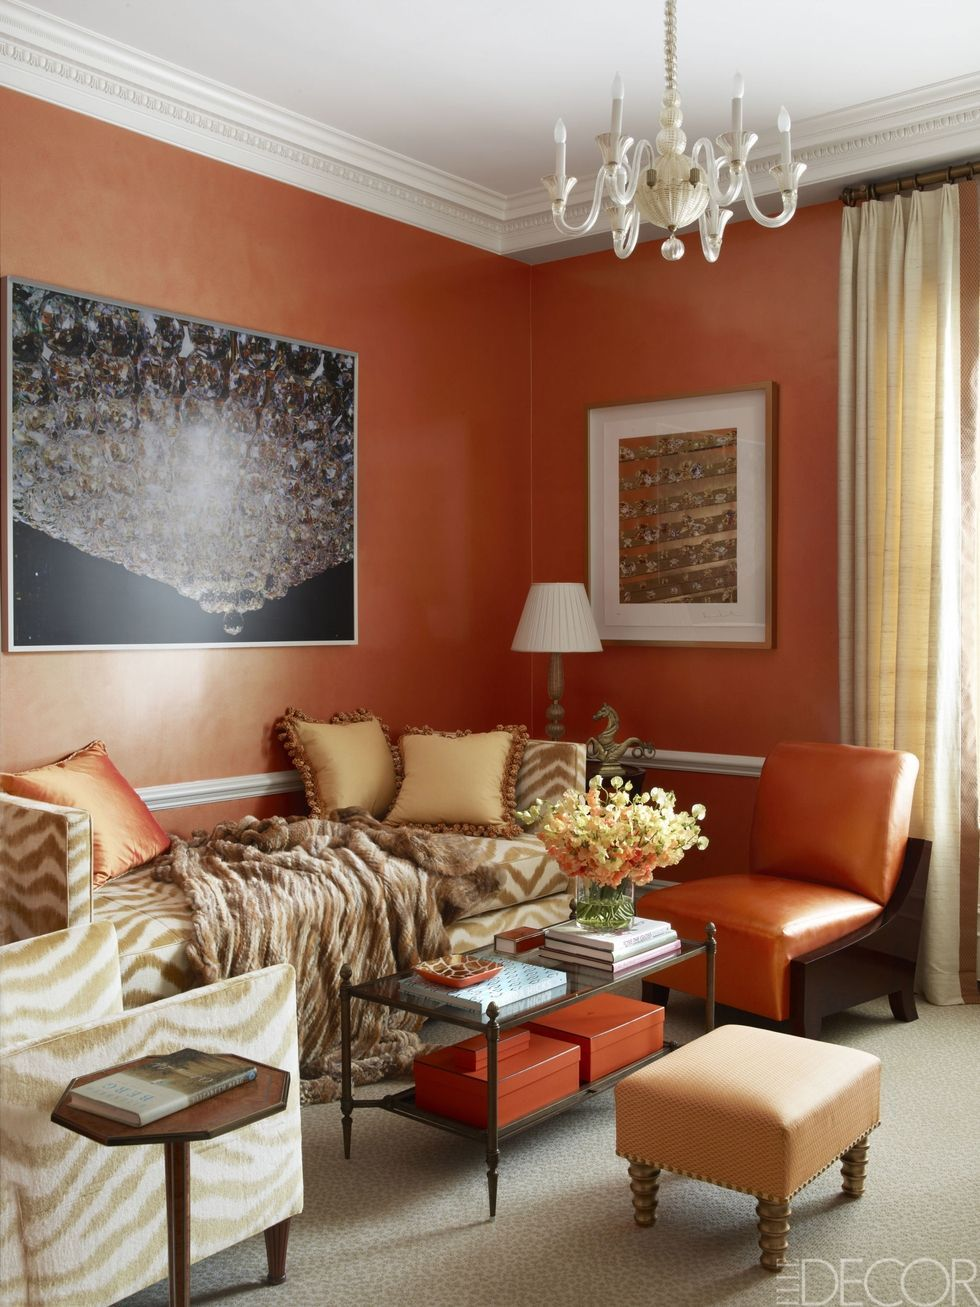 Small Living Room Ideas - How To Decorate A Small Family Room on Small Space Small Living Room Ideas  id=65870